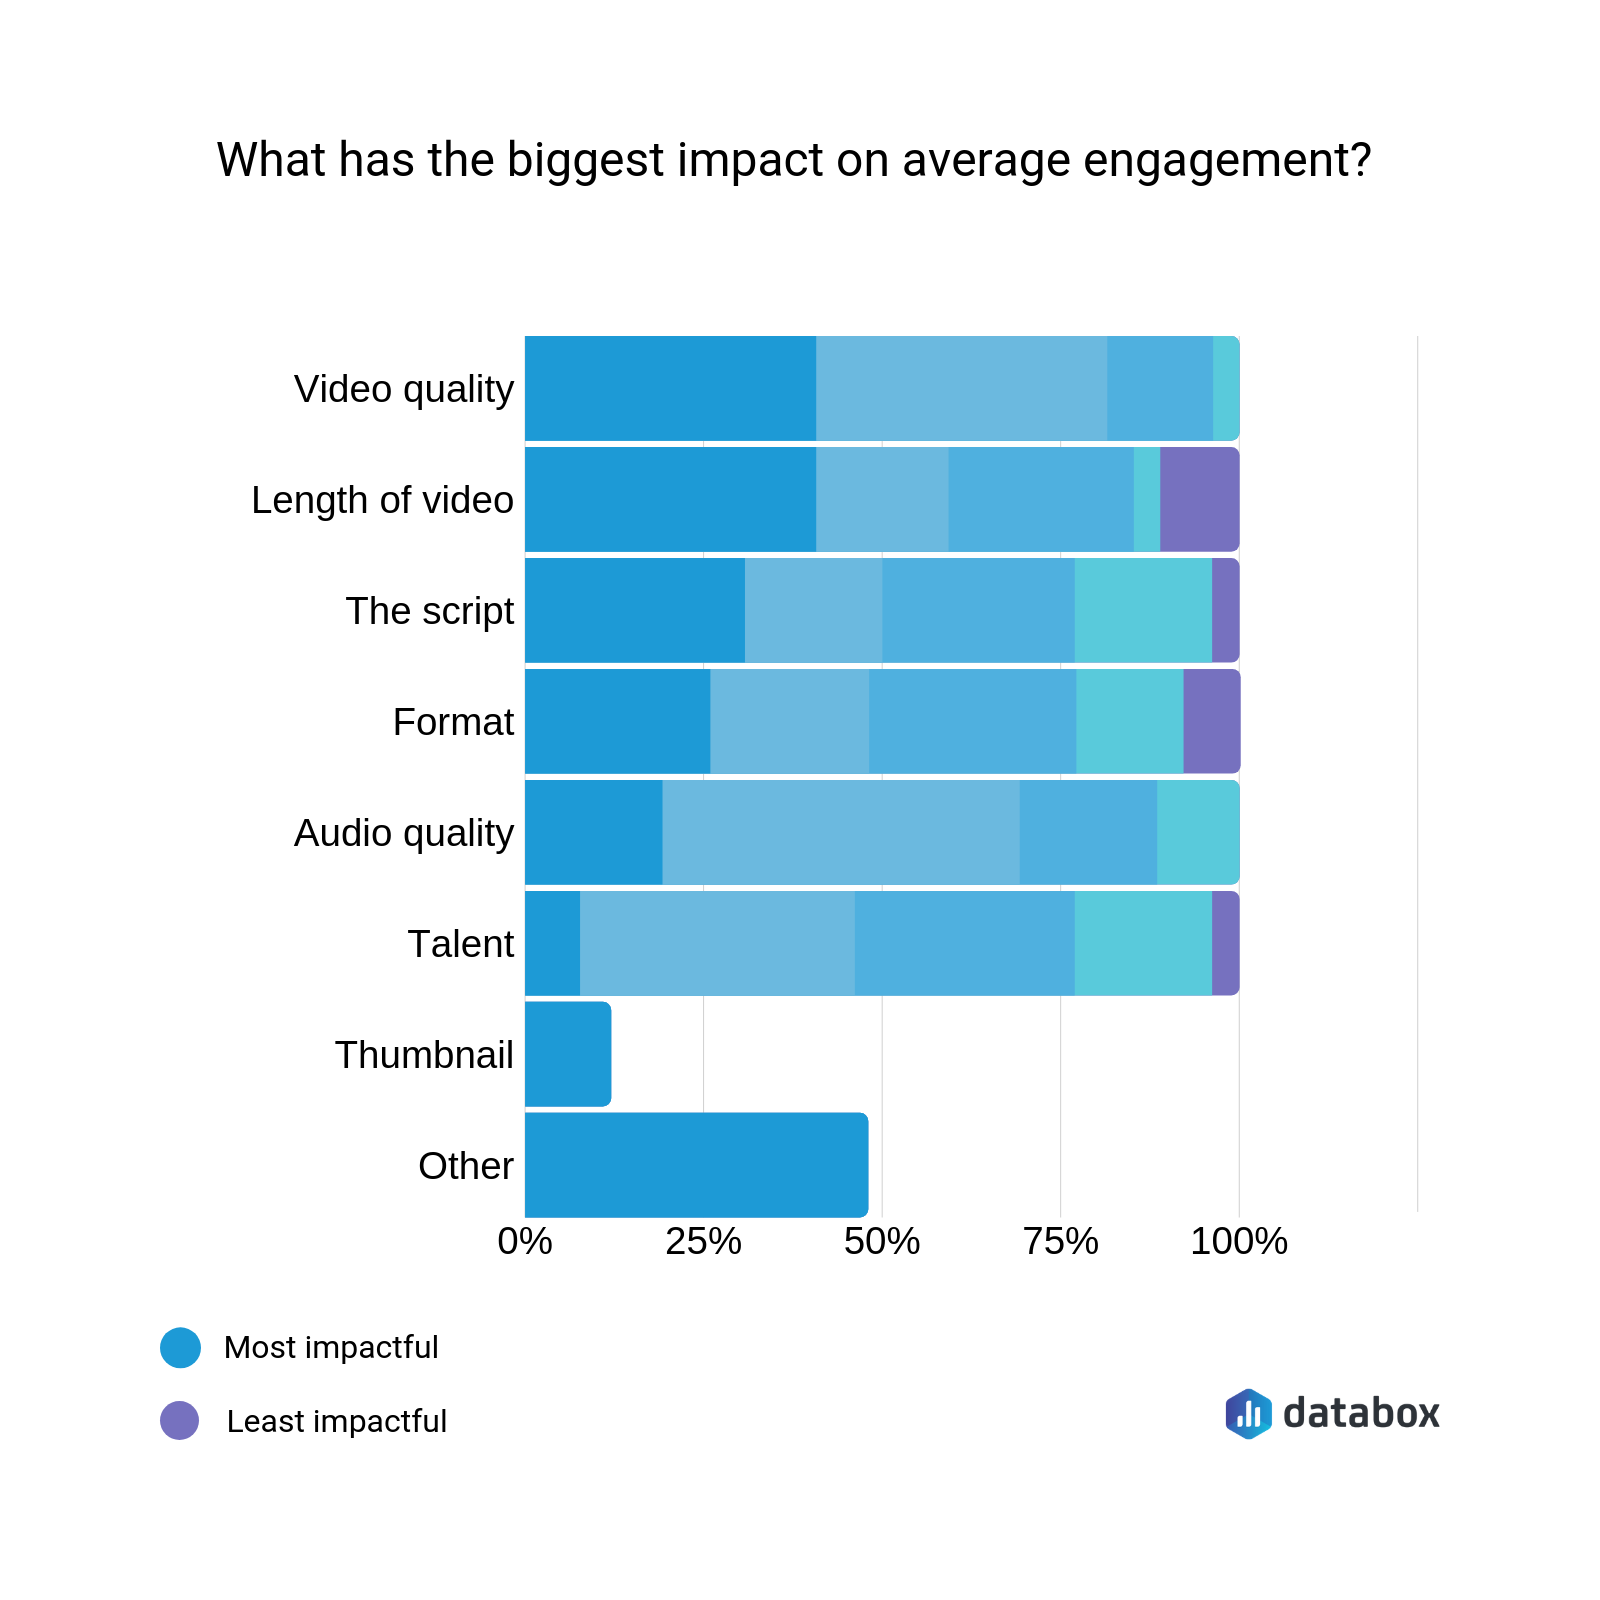 Research the Databox in the article Performance Indicators for Your Video